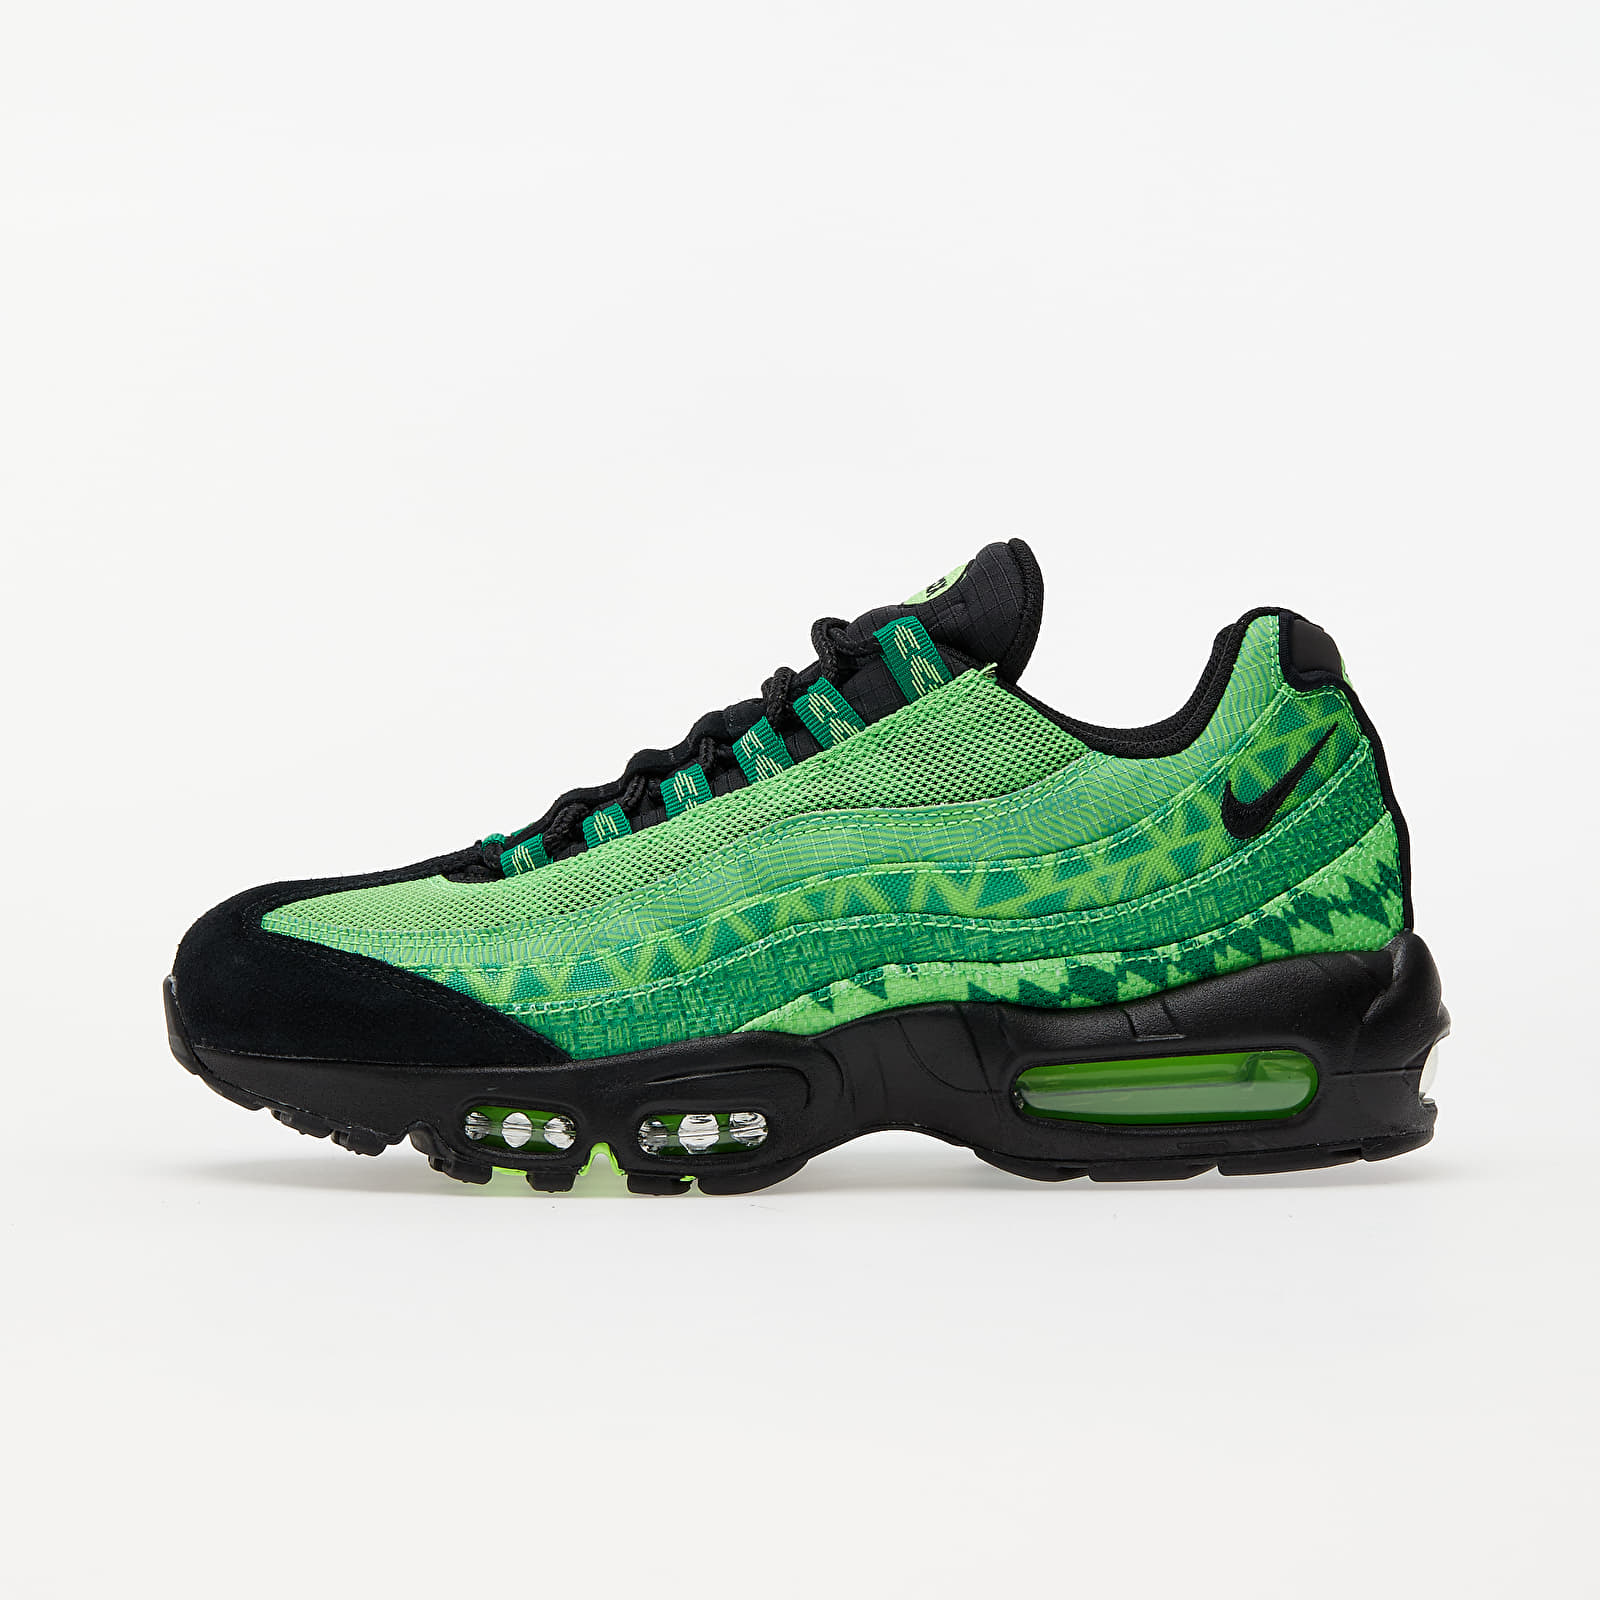 Nike Air Max 95 Ctry Pine Green/ Black-Sub Lime-White EUR 41